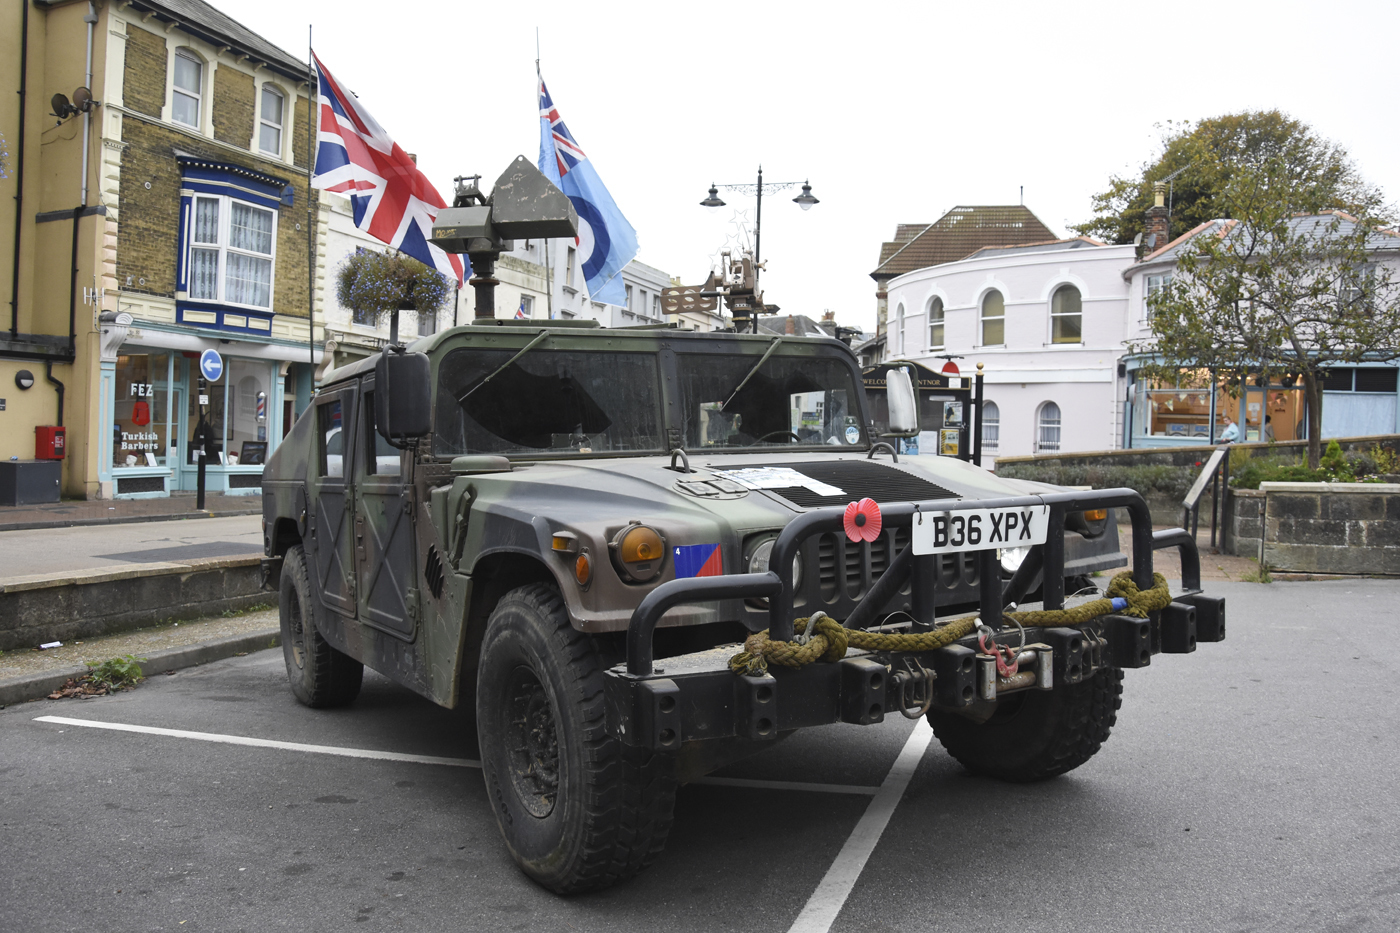 20161029_stp_3564-hss-launch-of-the-poppy-appeal-2016-in-ventnor